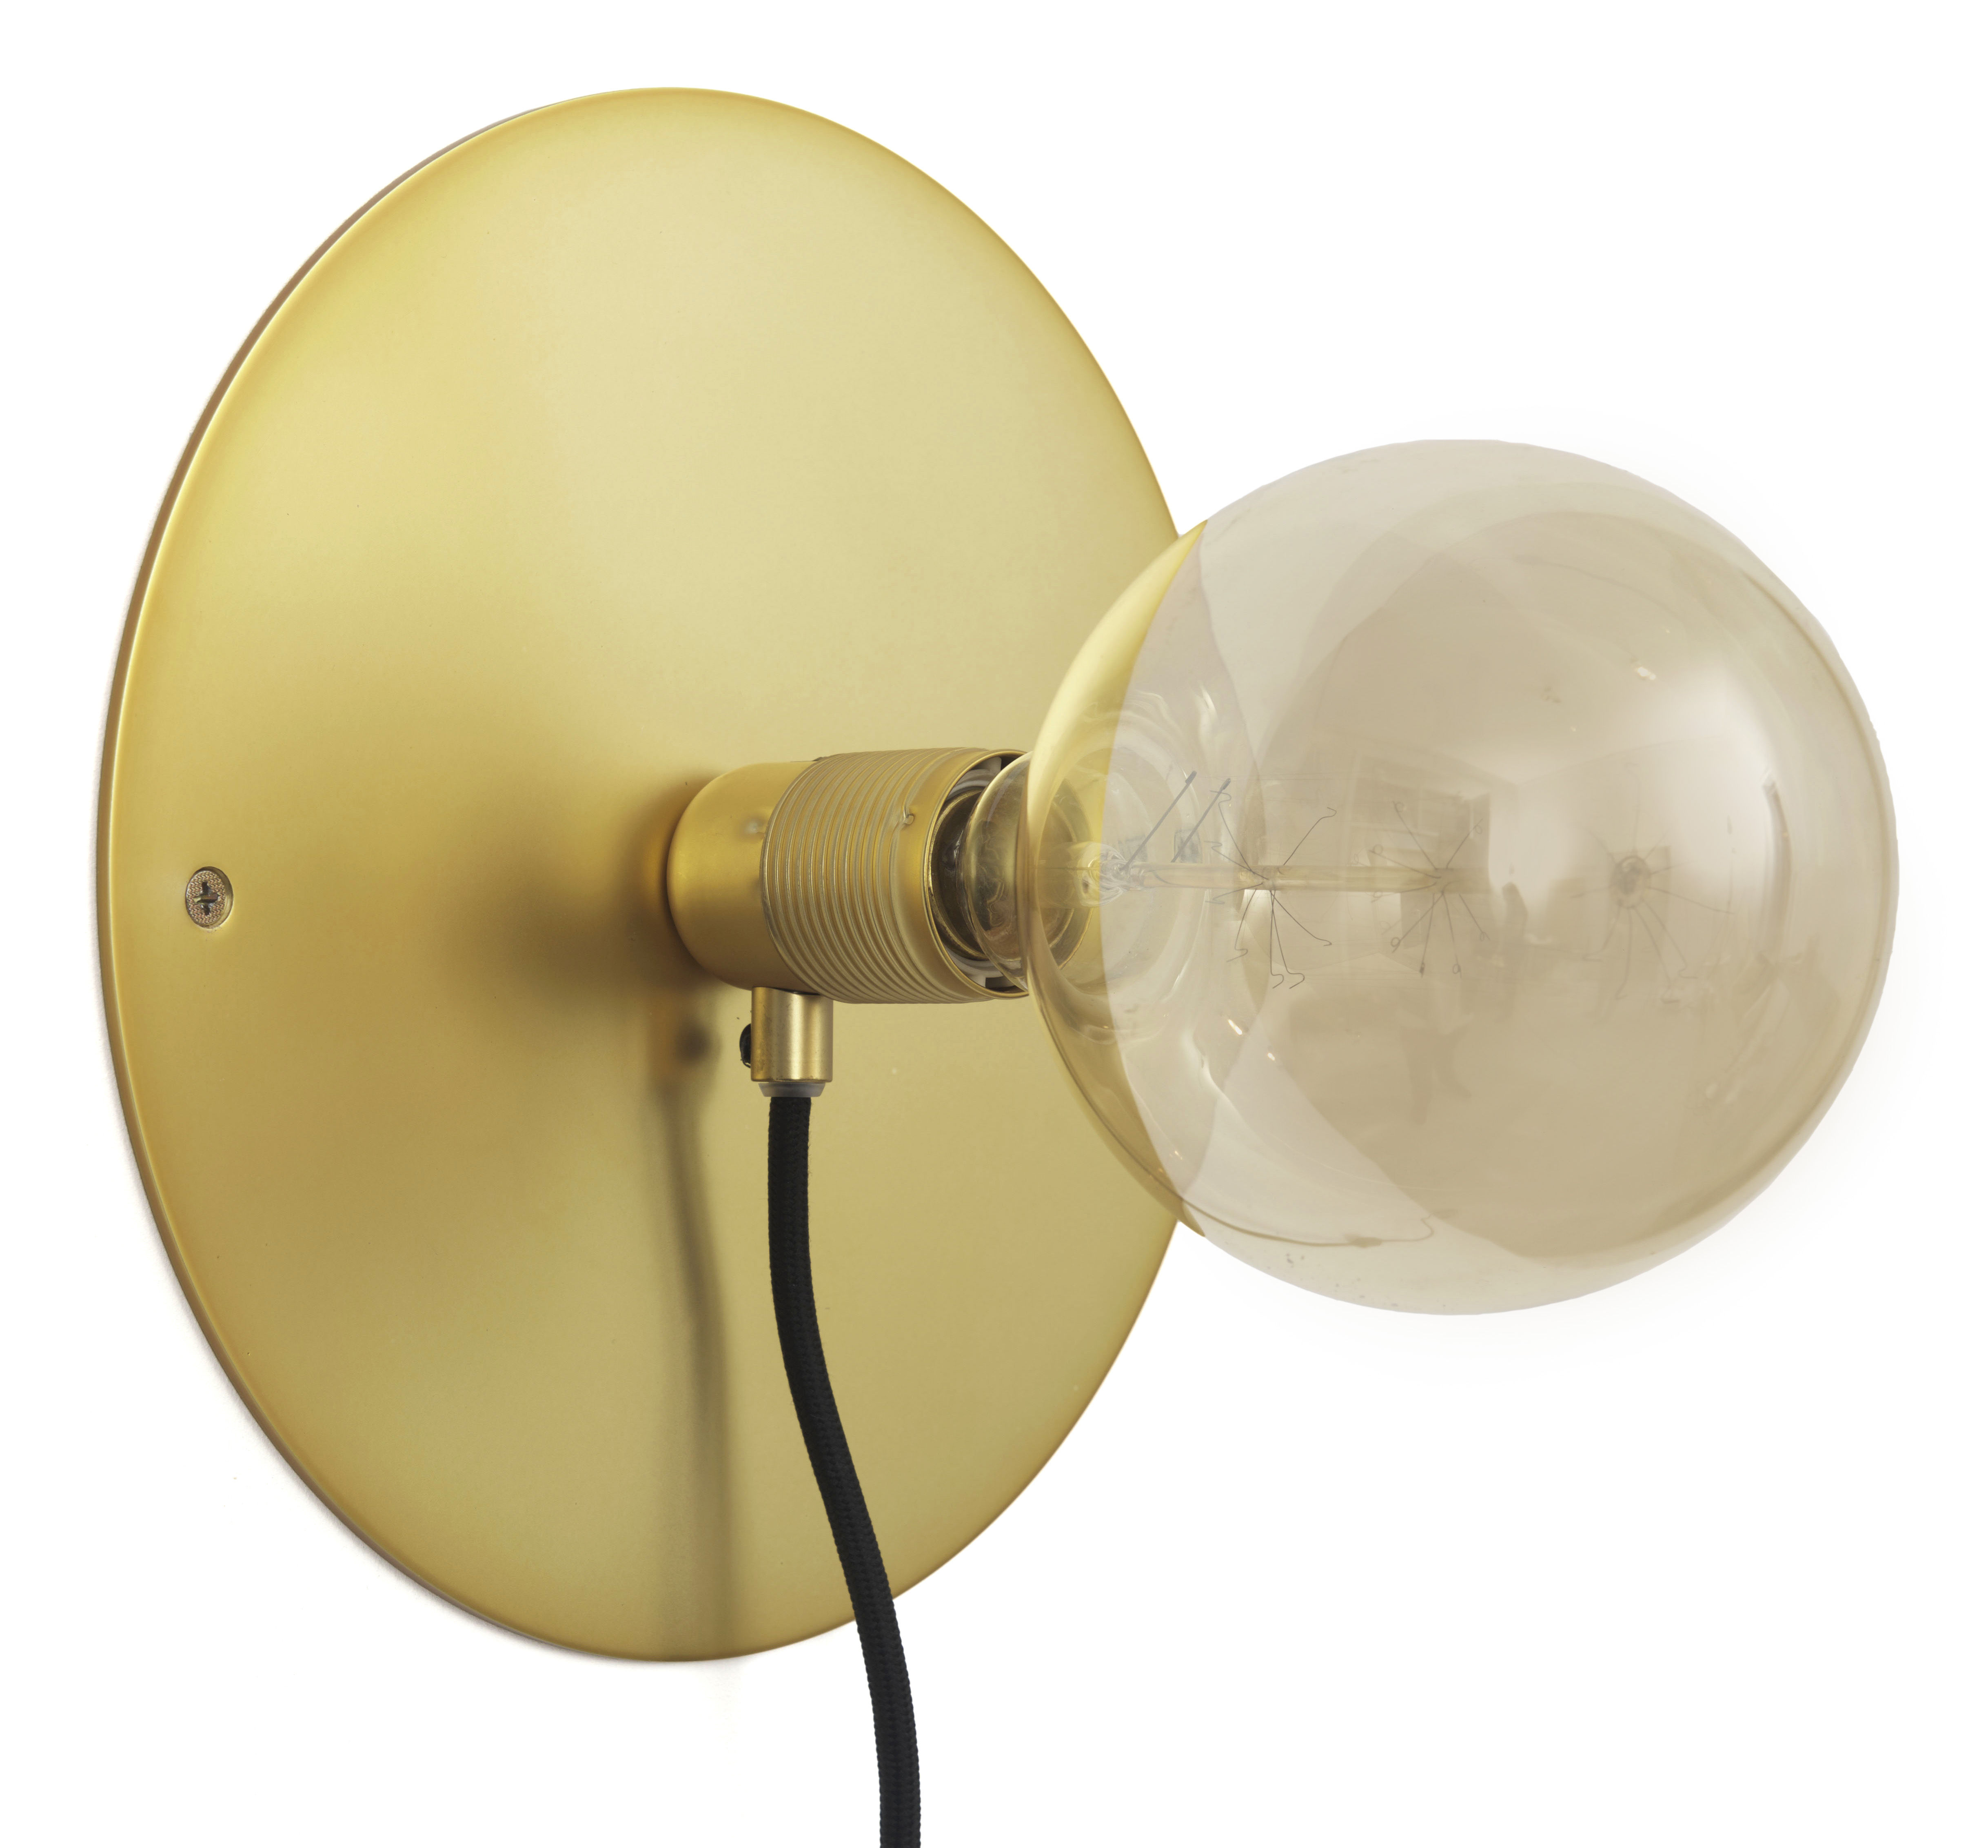 Lighting - Wall Lights - Frama Kit Wall light with plug - Large - Ø 25 cm by Frama  - Brass - Brass finish metal